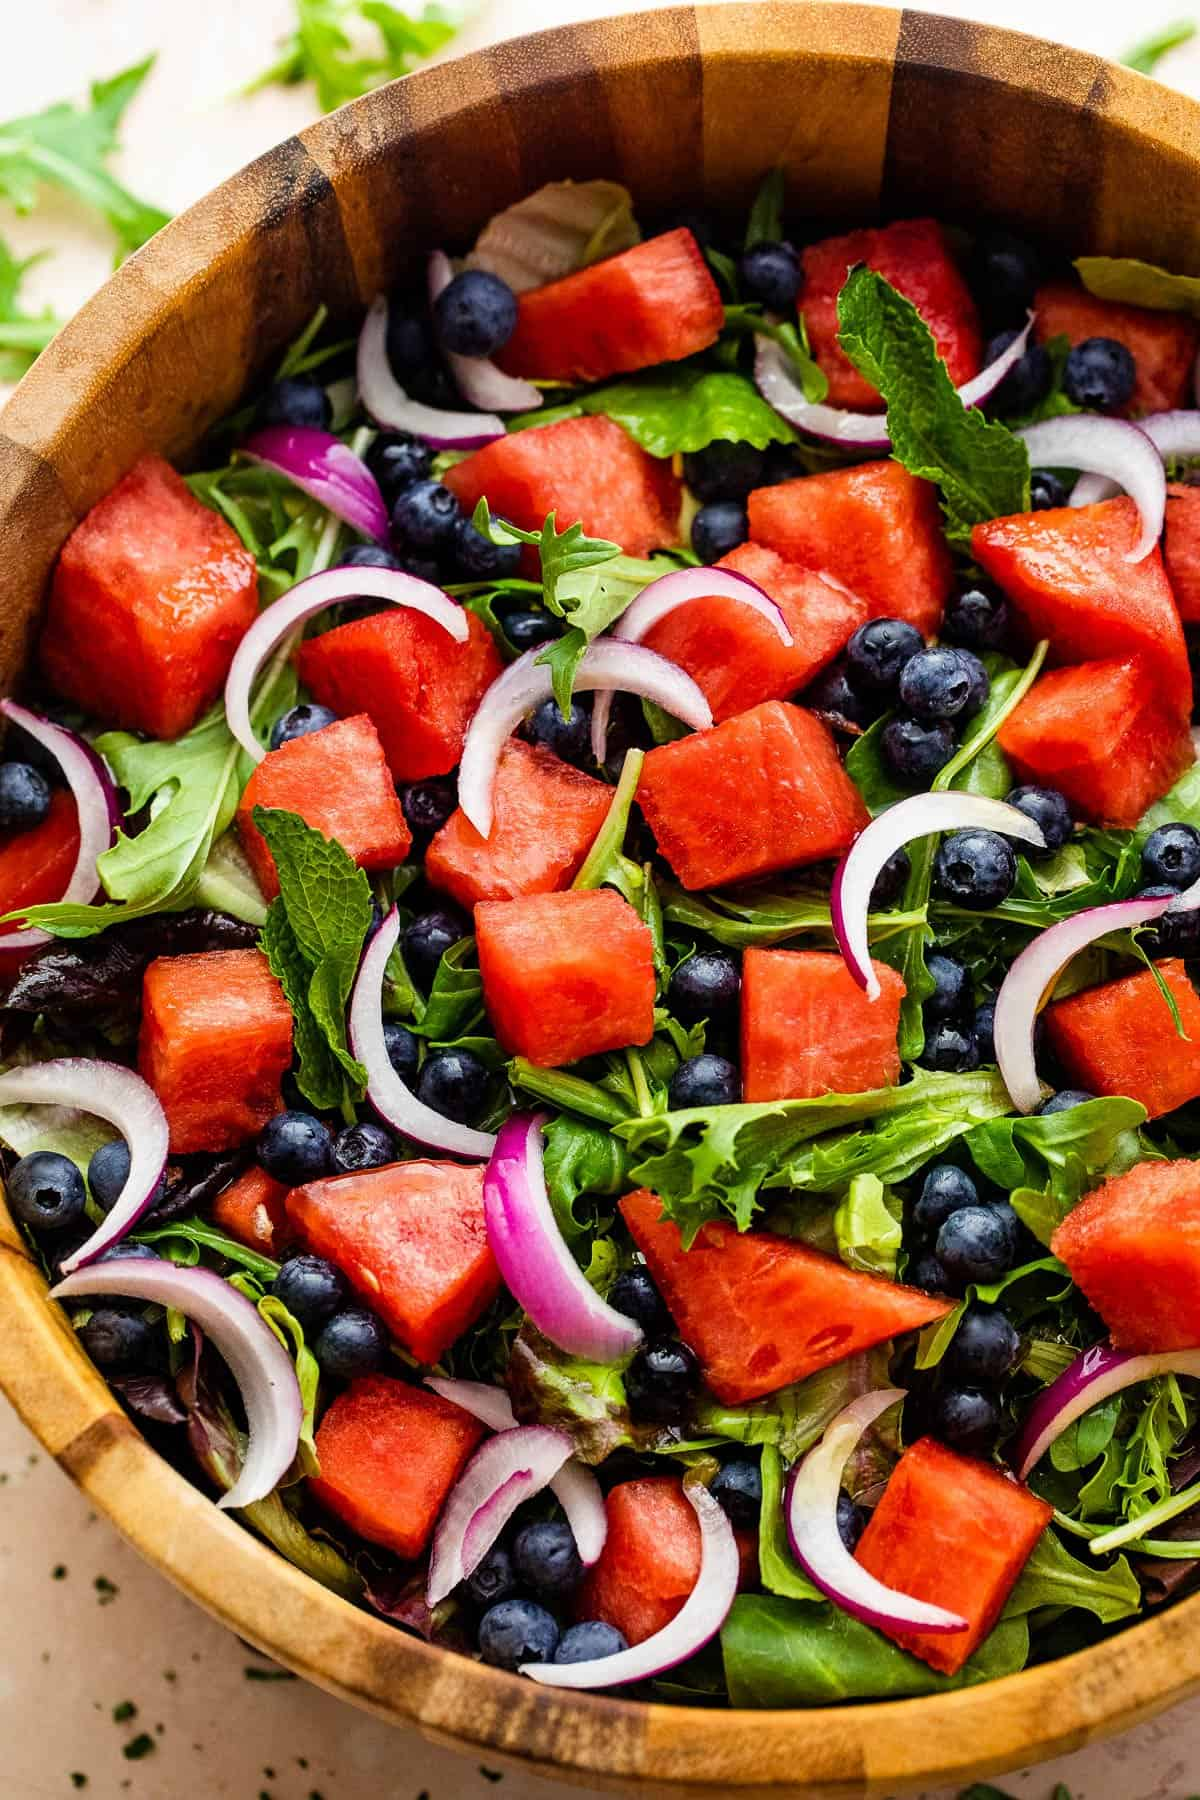 cubed watermelon, blueberries, and sliced red onions atop a bed of torn up lettuce greens in a salad bowl